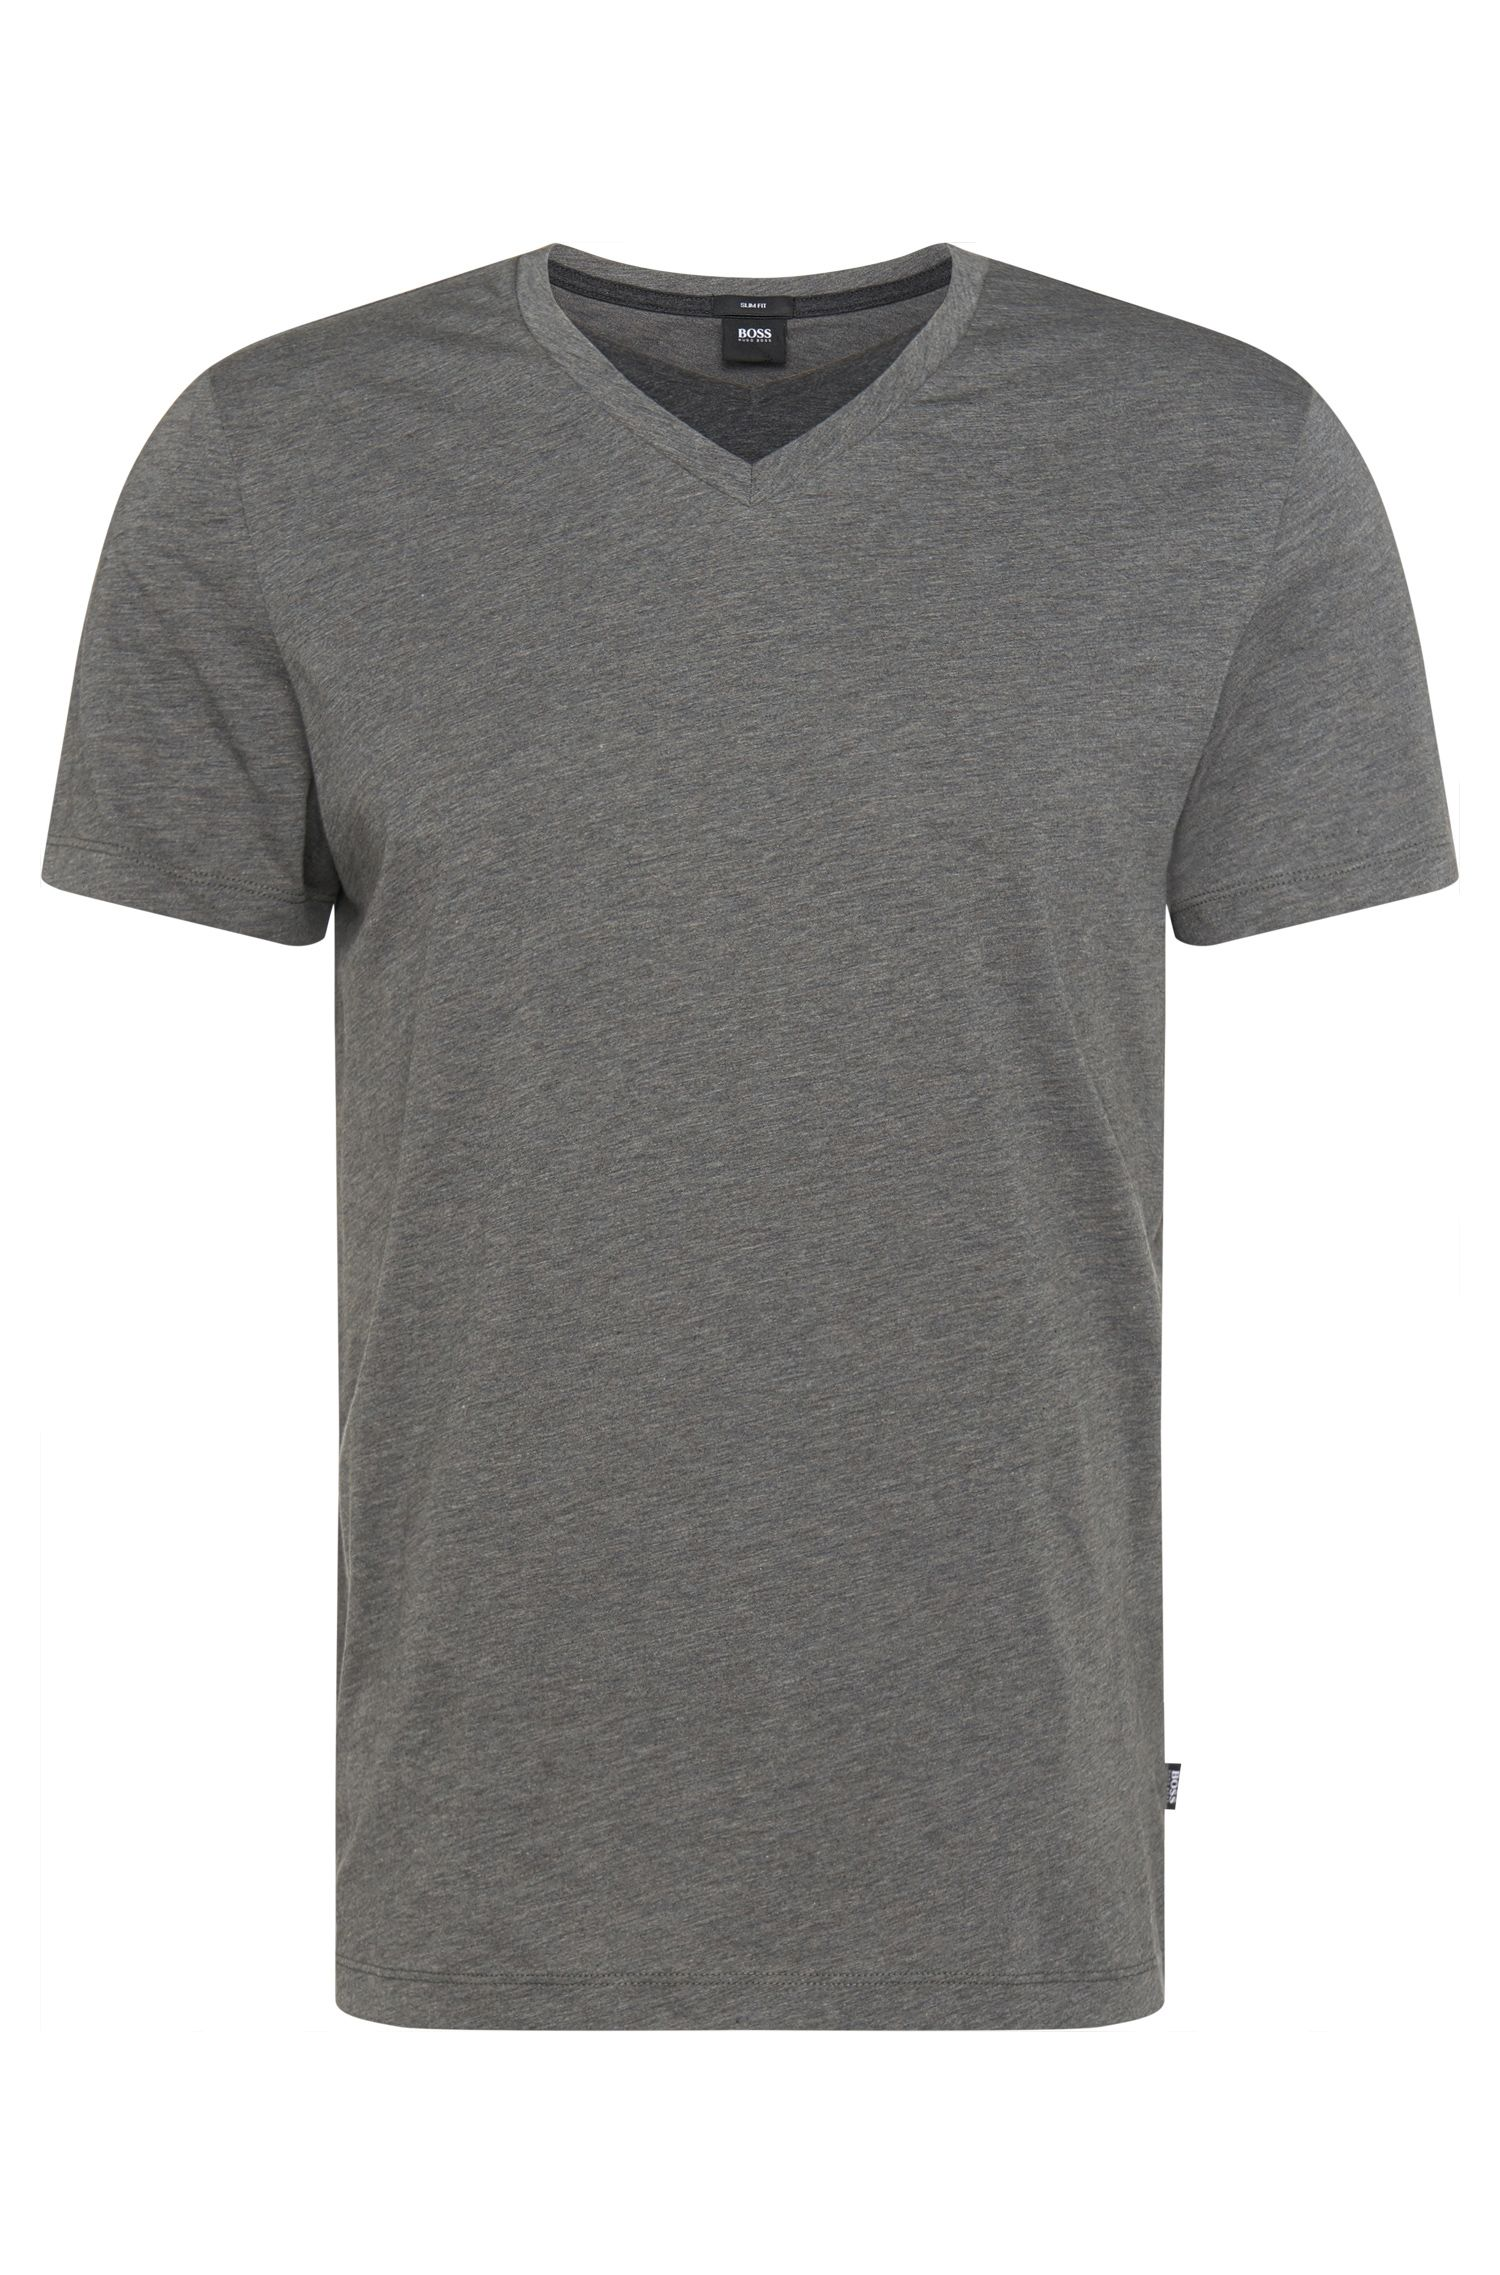 Slim-Fit T-Shirt aus Baumwolle im Lagen-Look: 'Teal 12'